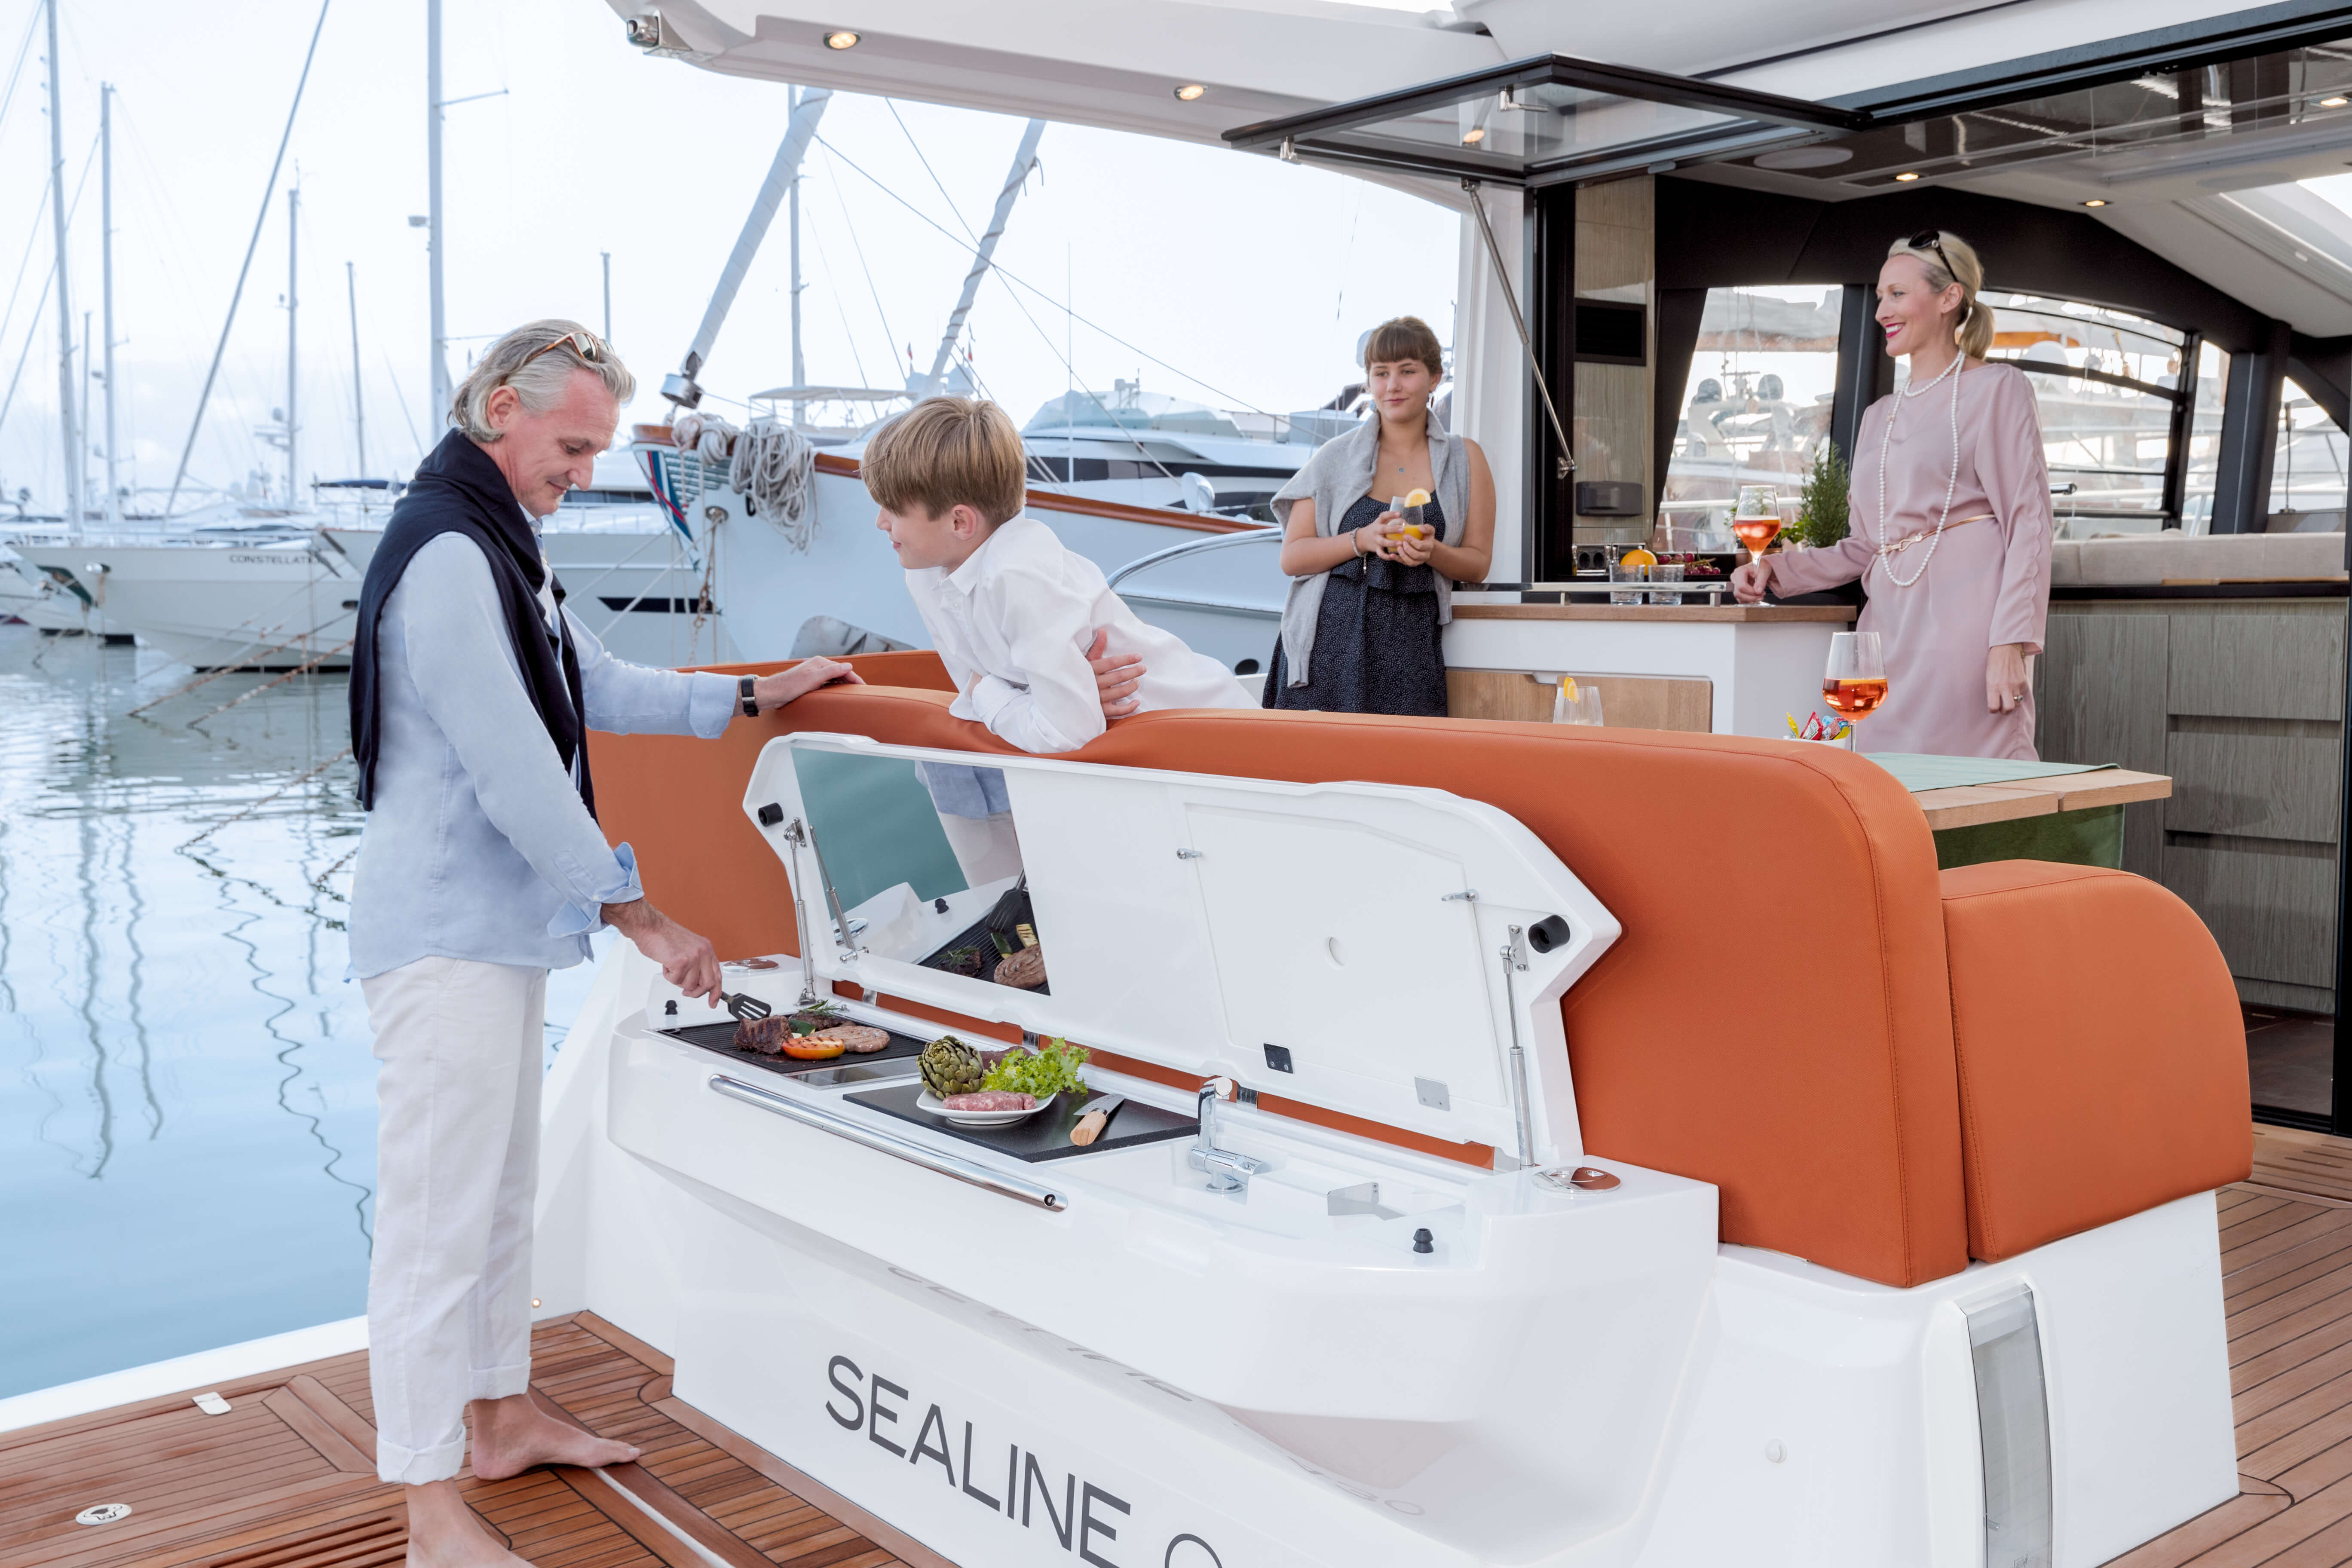 Sealine C430 | Electric grill, furniture with sink, light and worktop, at stern | Sealine